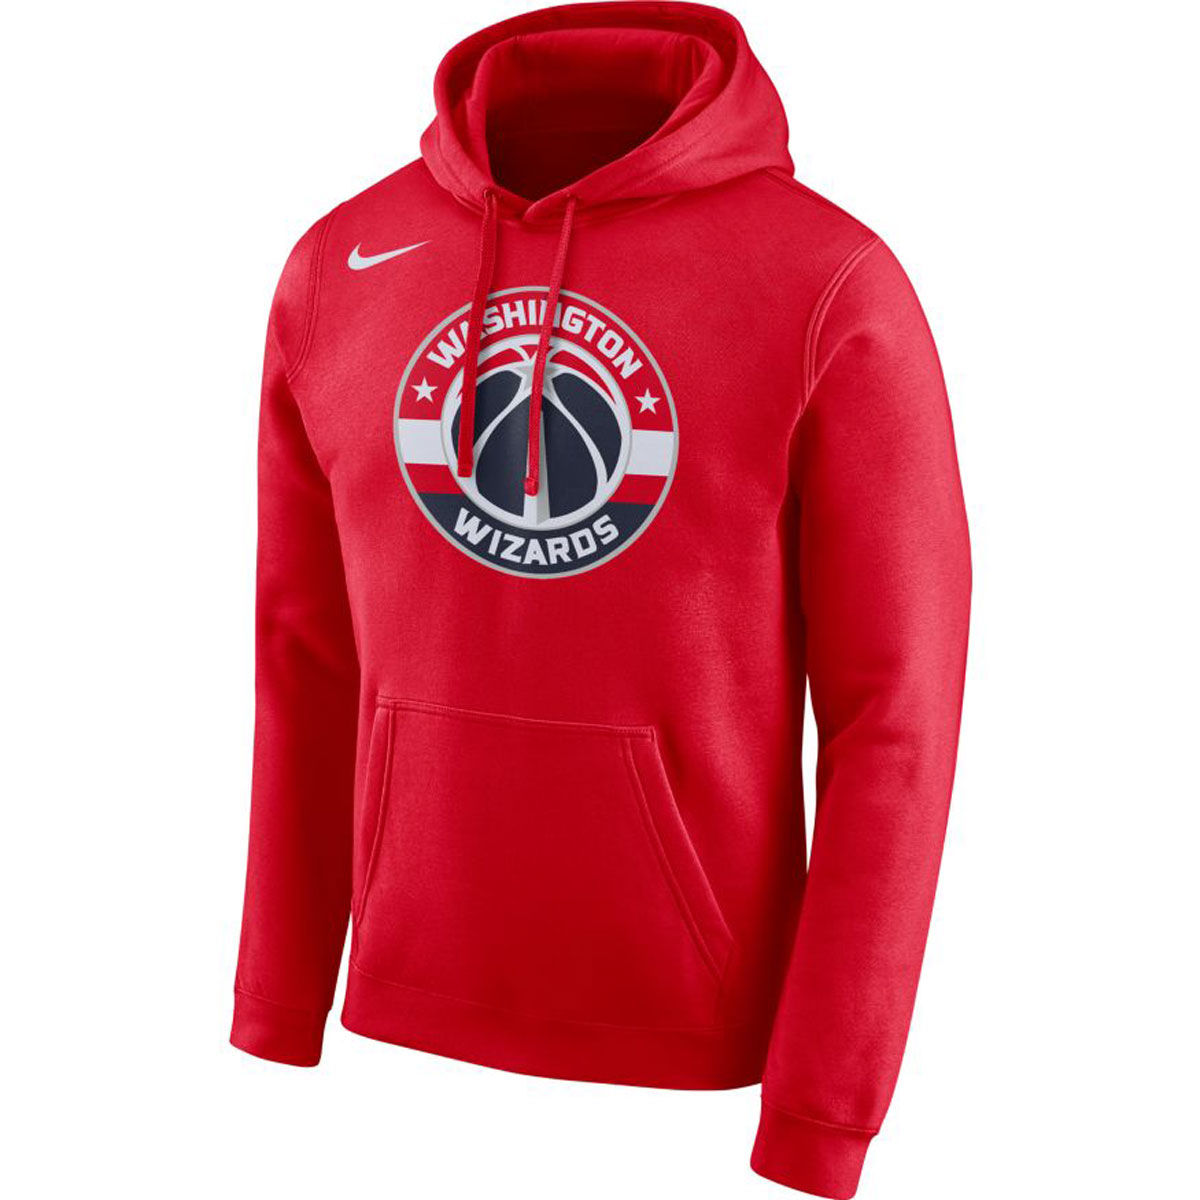 Washington Wizards Adult Logo Hoodie